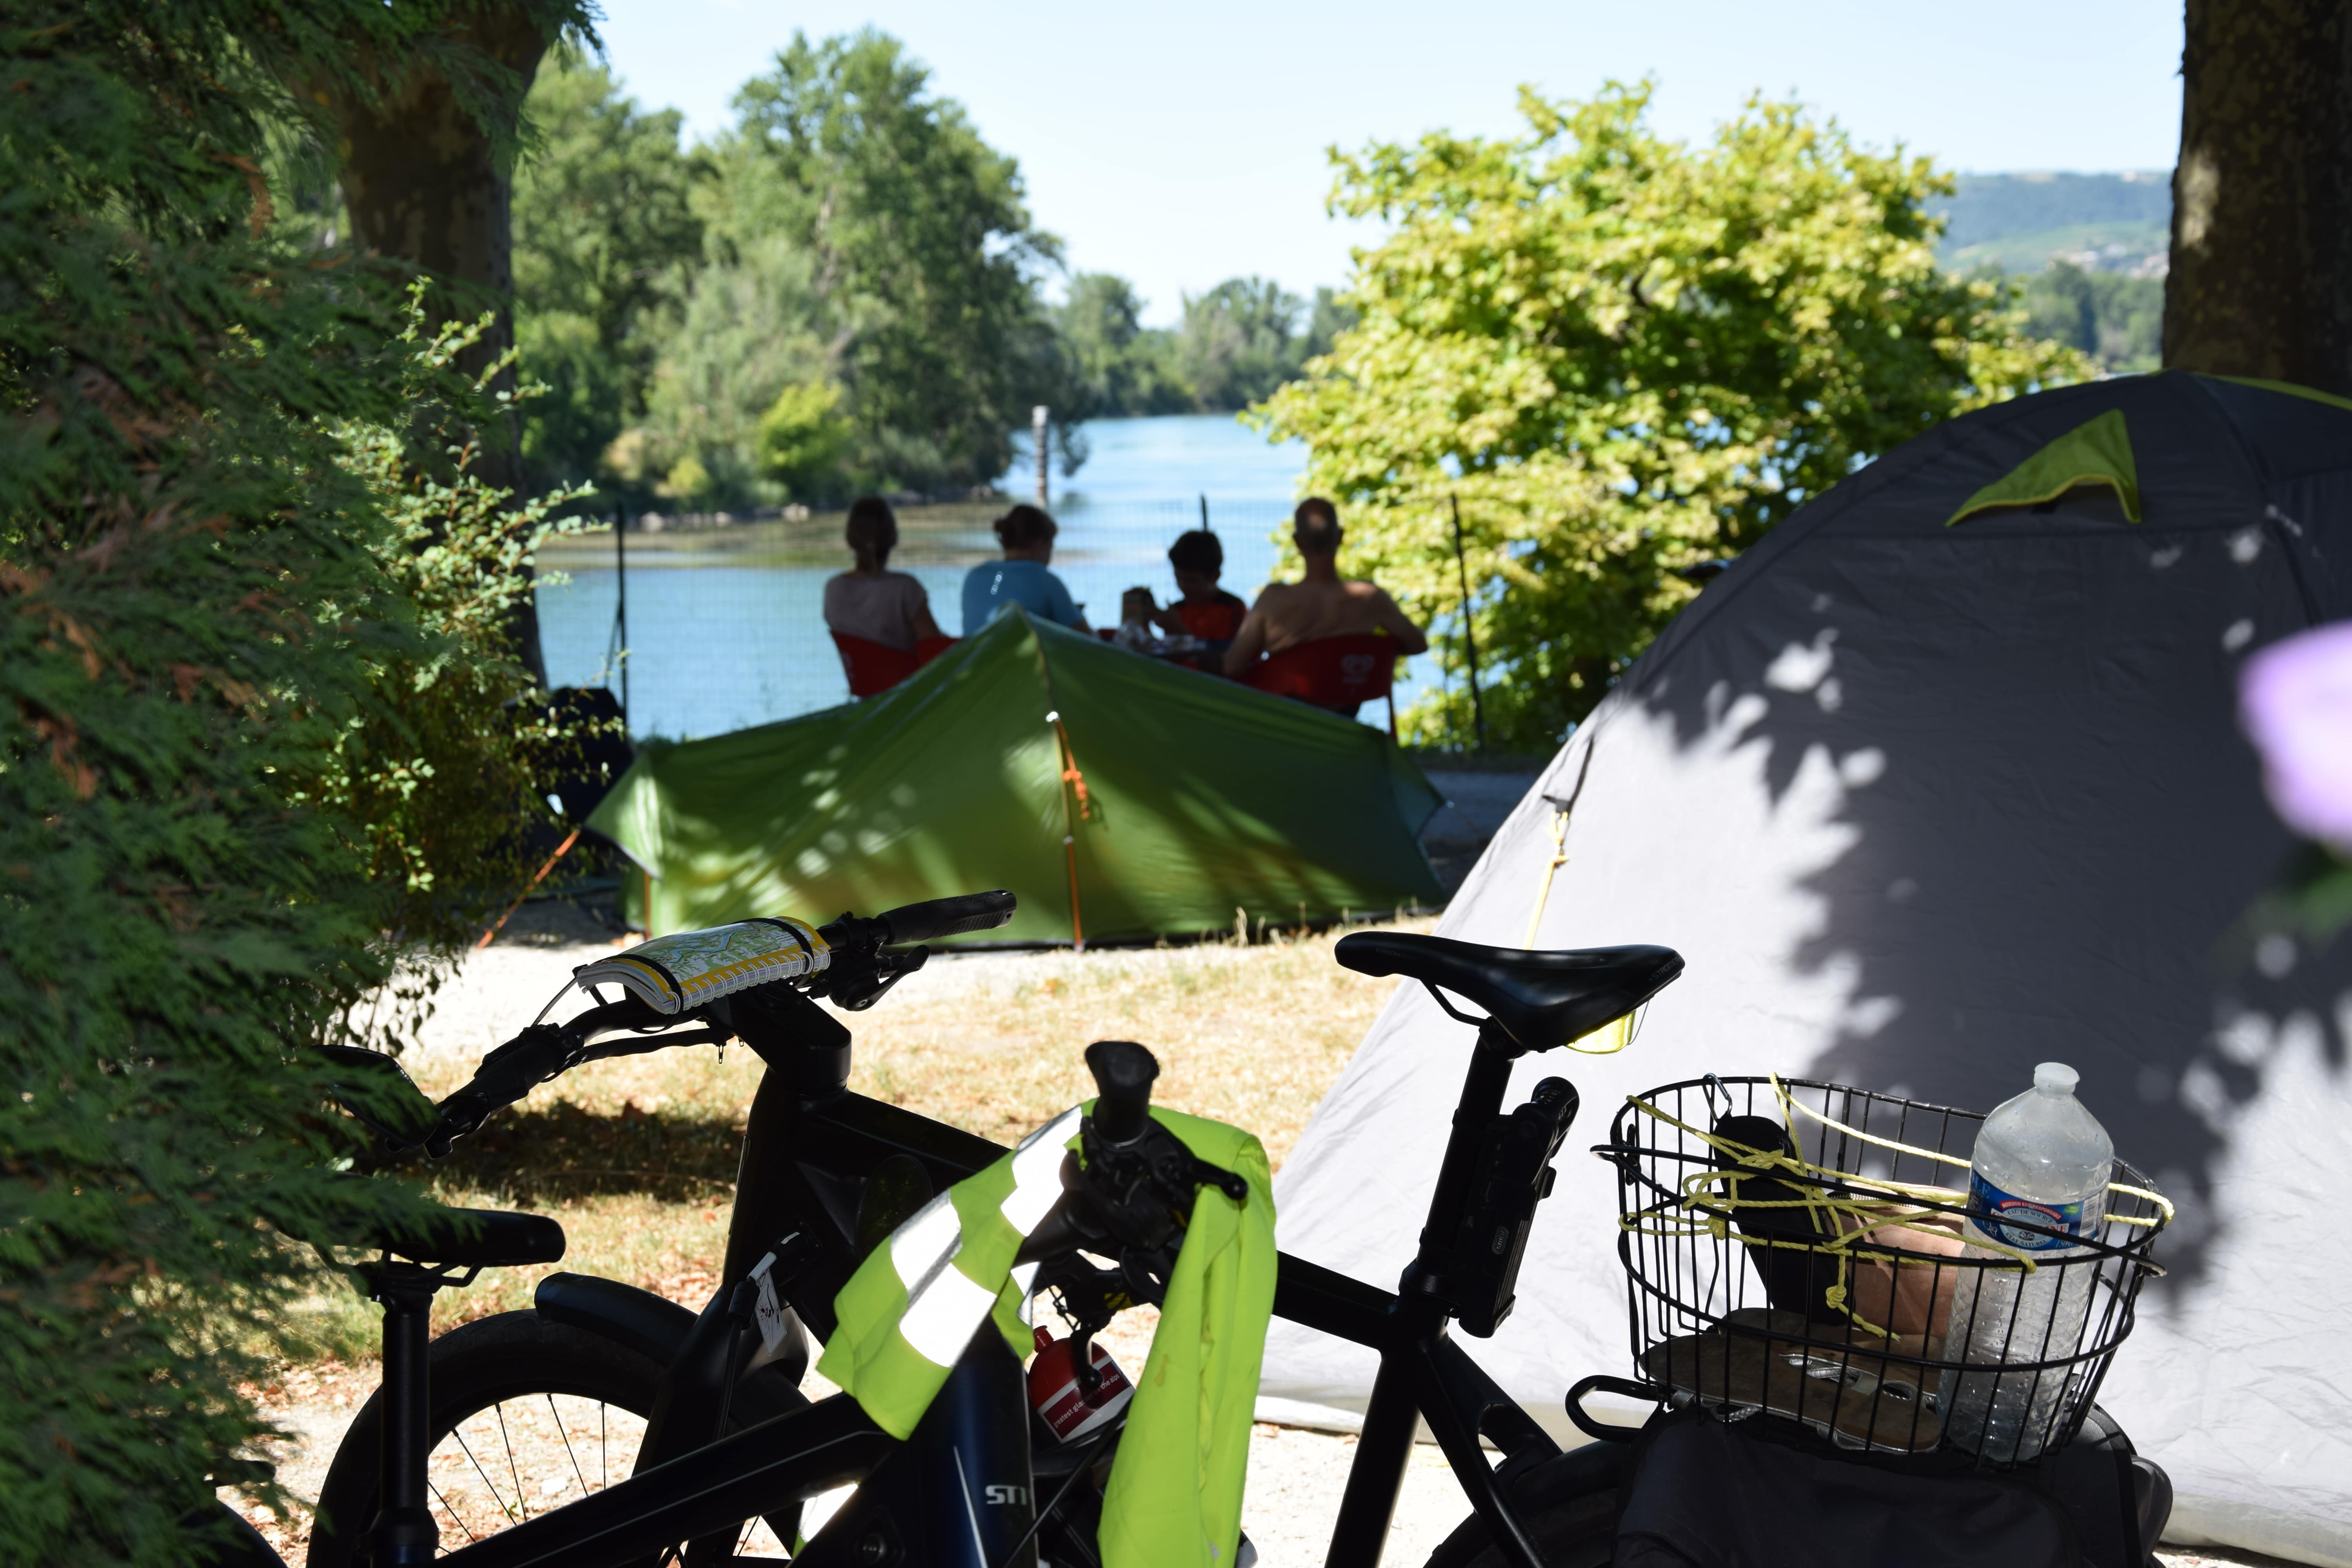 Pitch - Pitch Tent (Without Car) - Bicycle Or Motorbike - 1 Pers - Camping Le Rhône